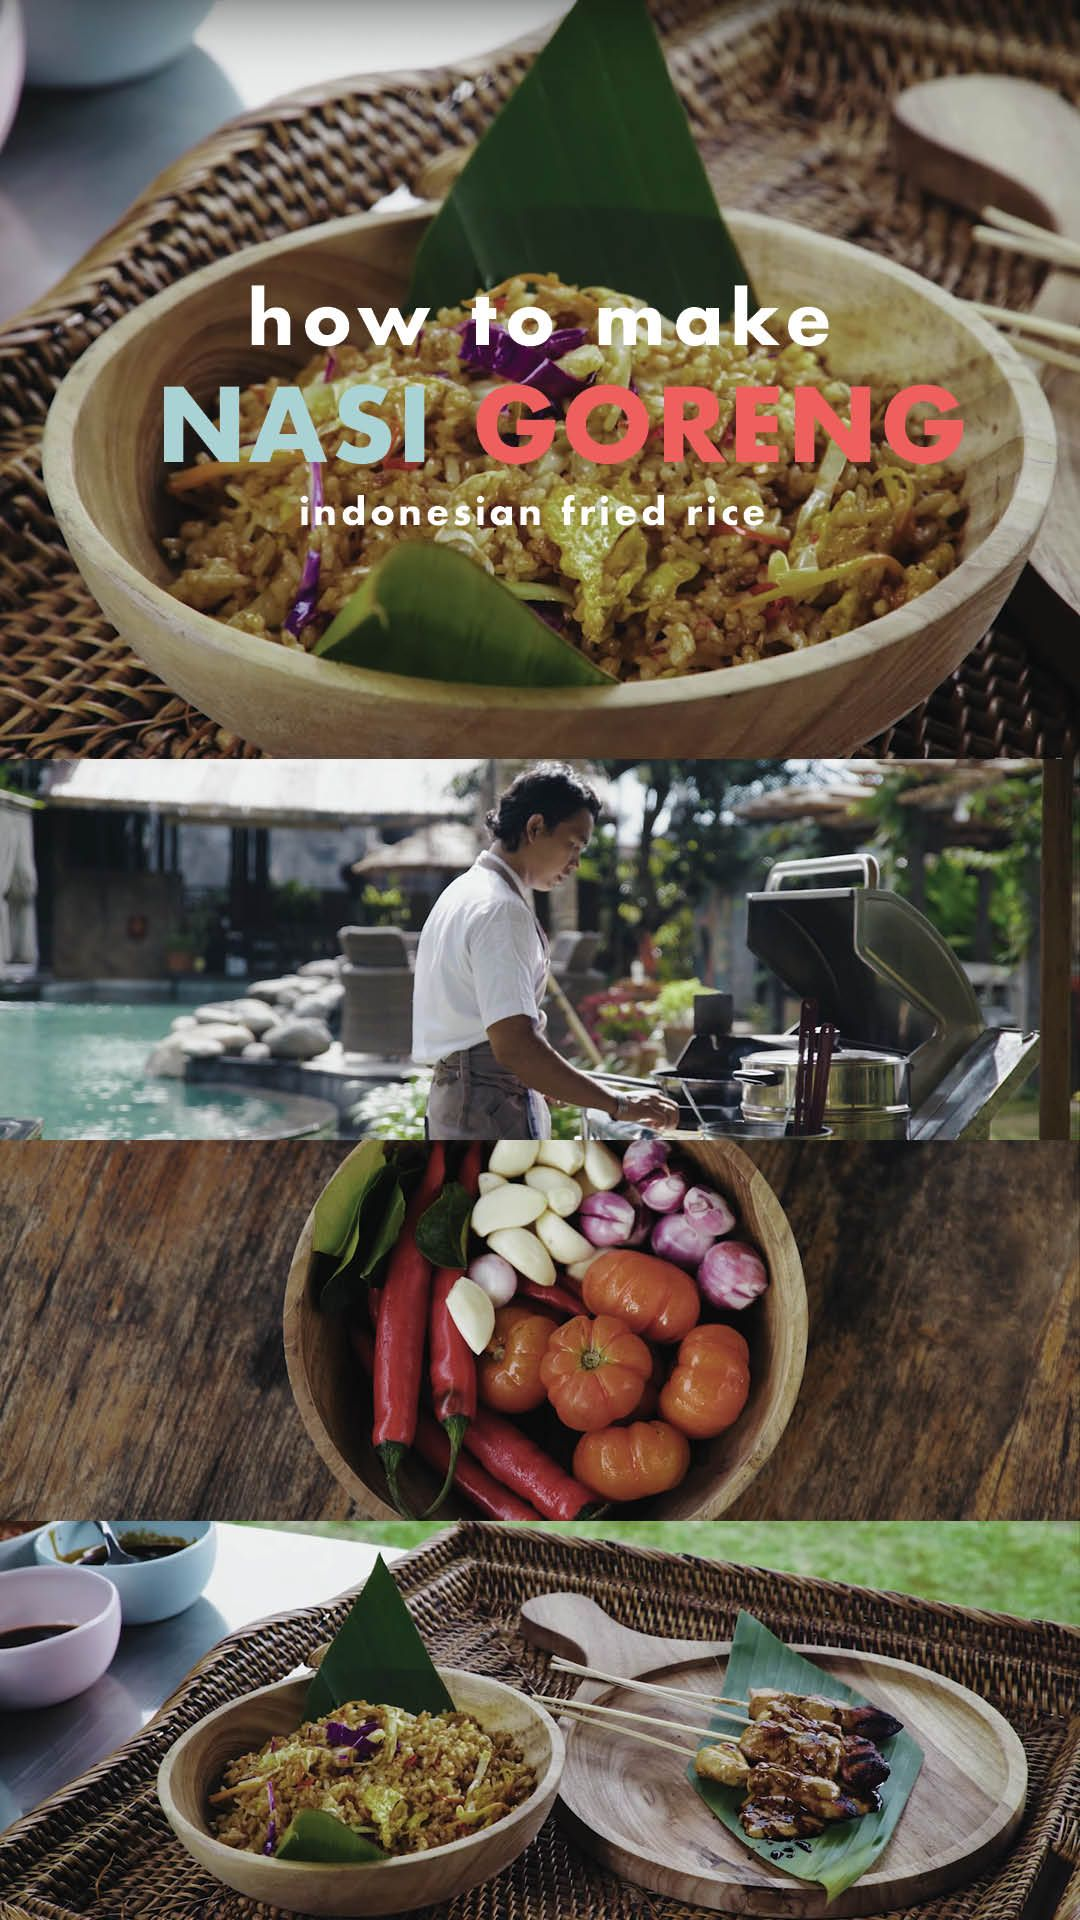 How To Make Nasi Goreng (Indonesian Fried Rice) Learn